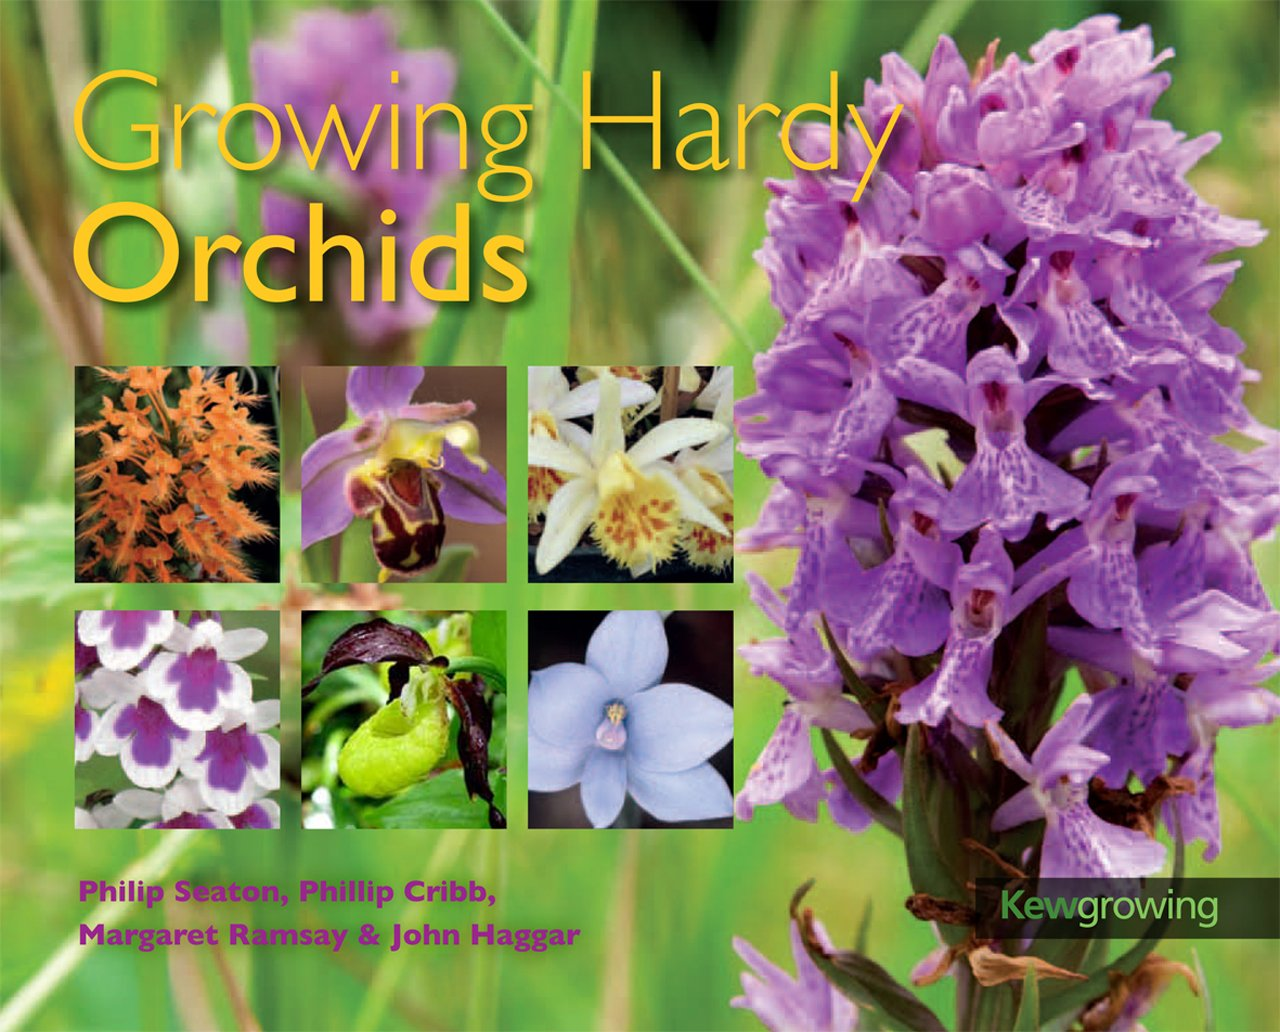 Download Growing Hardy Orchids (Kew Growing) PDF